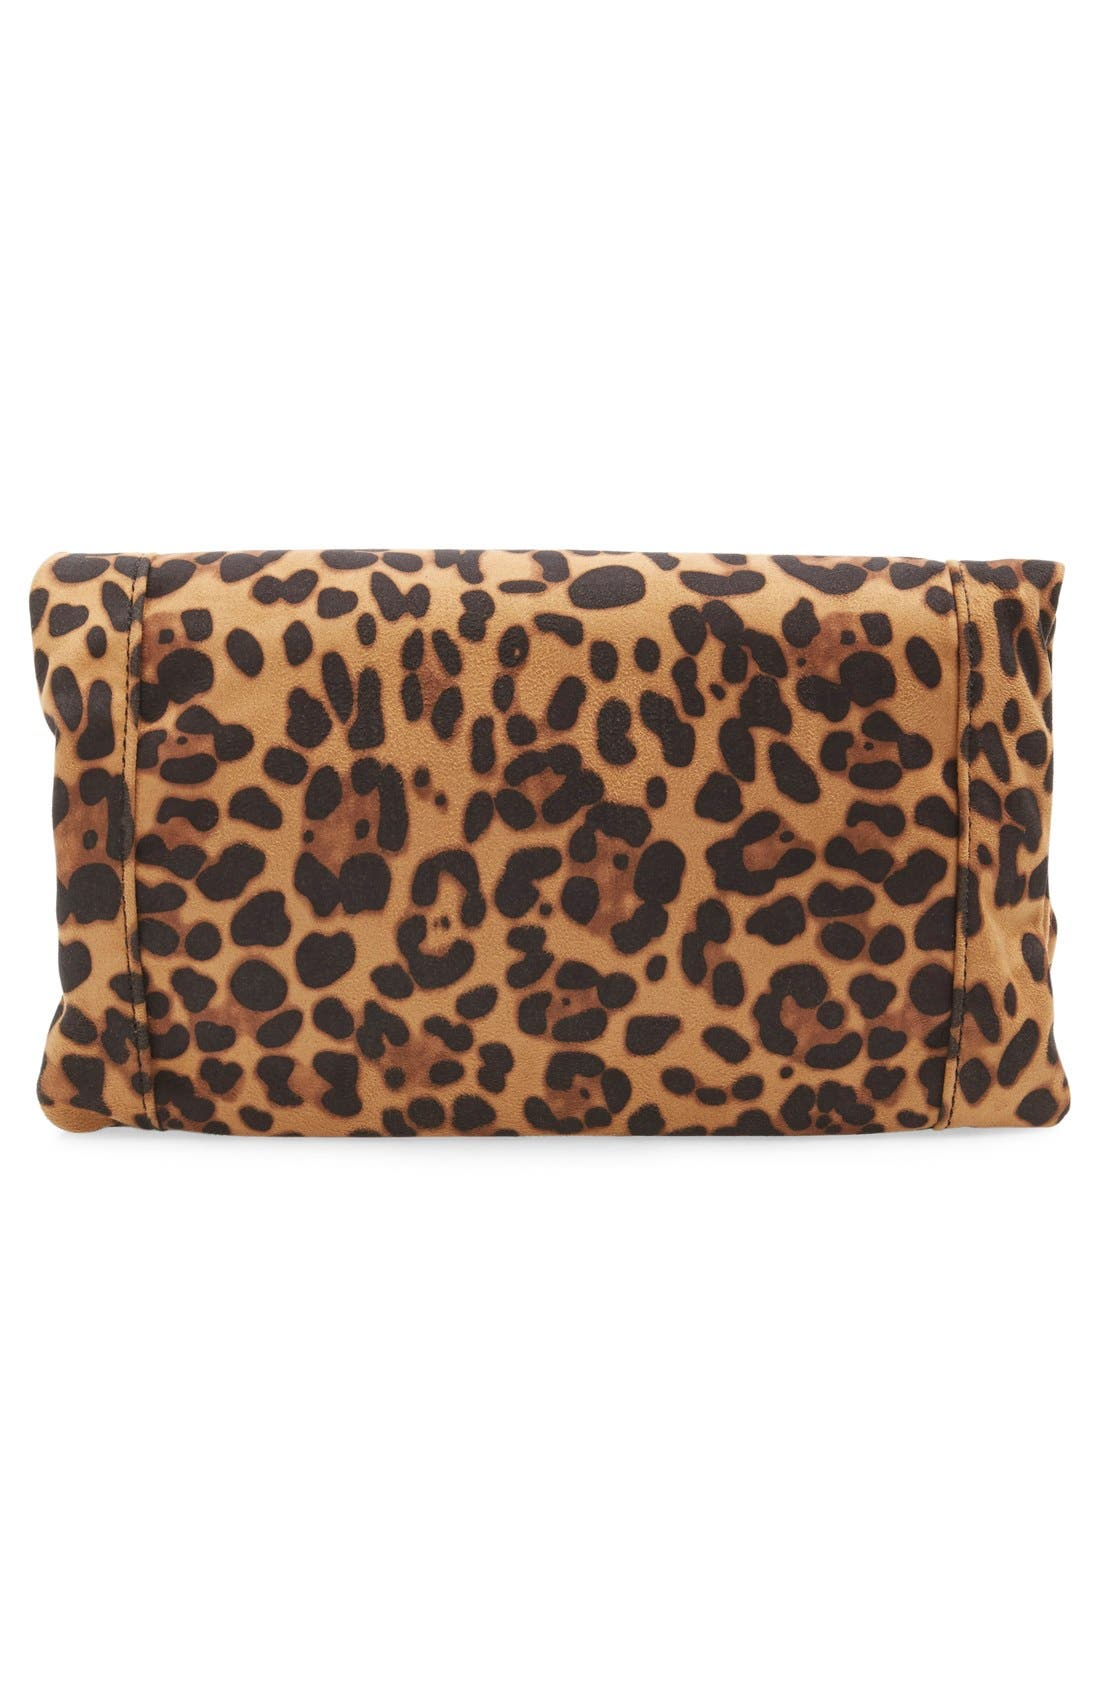 'Tasia' Print Foldover Clutch,                             Alternate thumbnail 8, color,